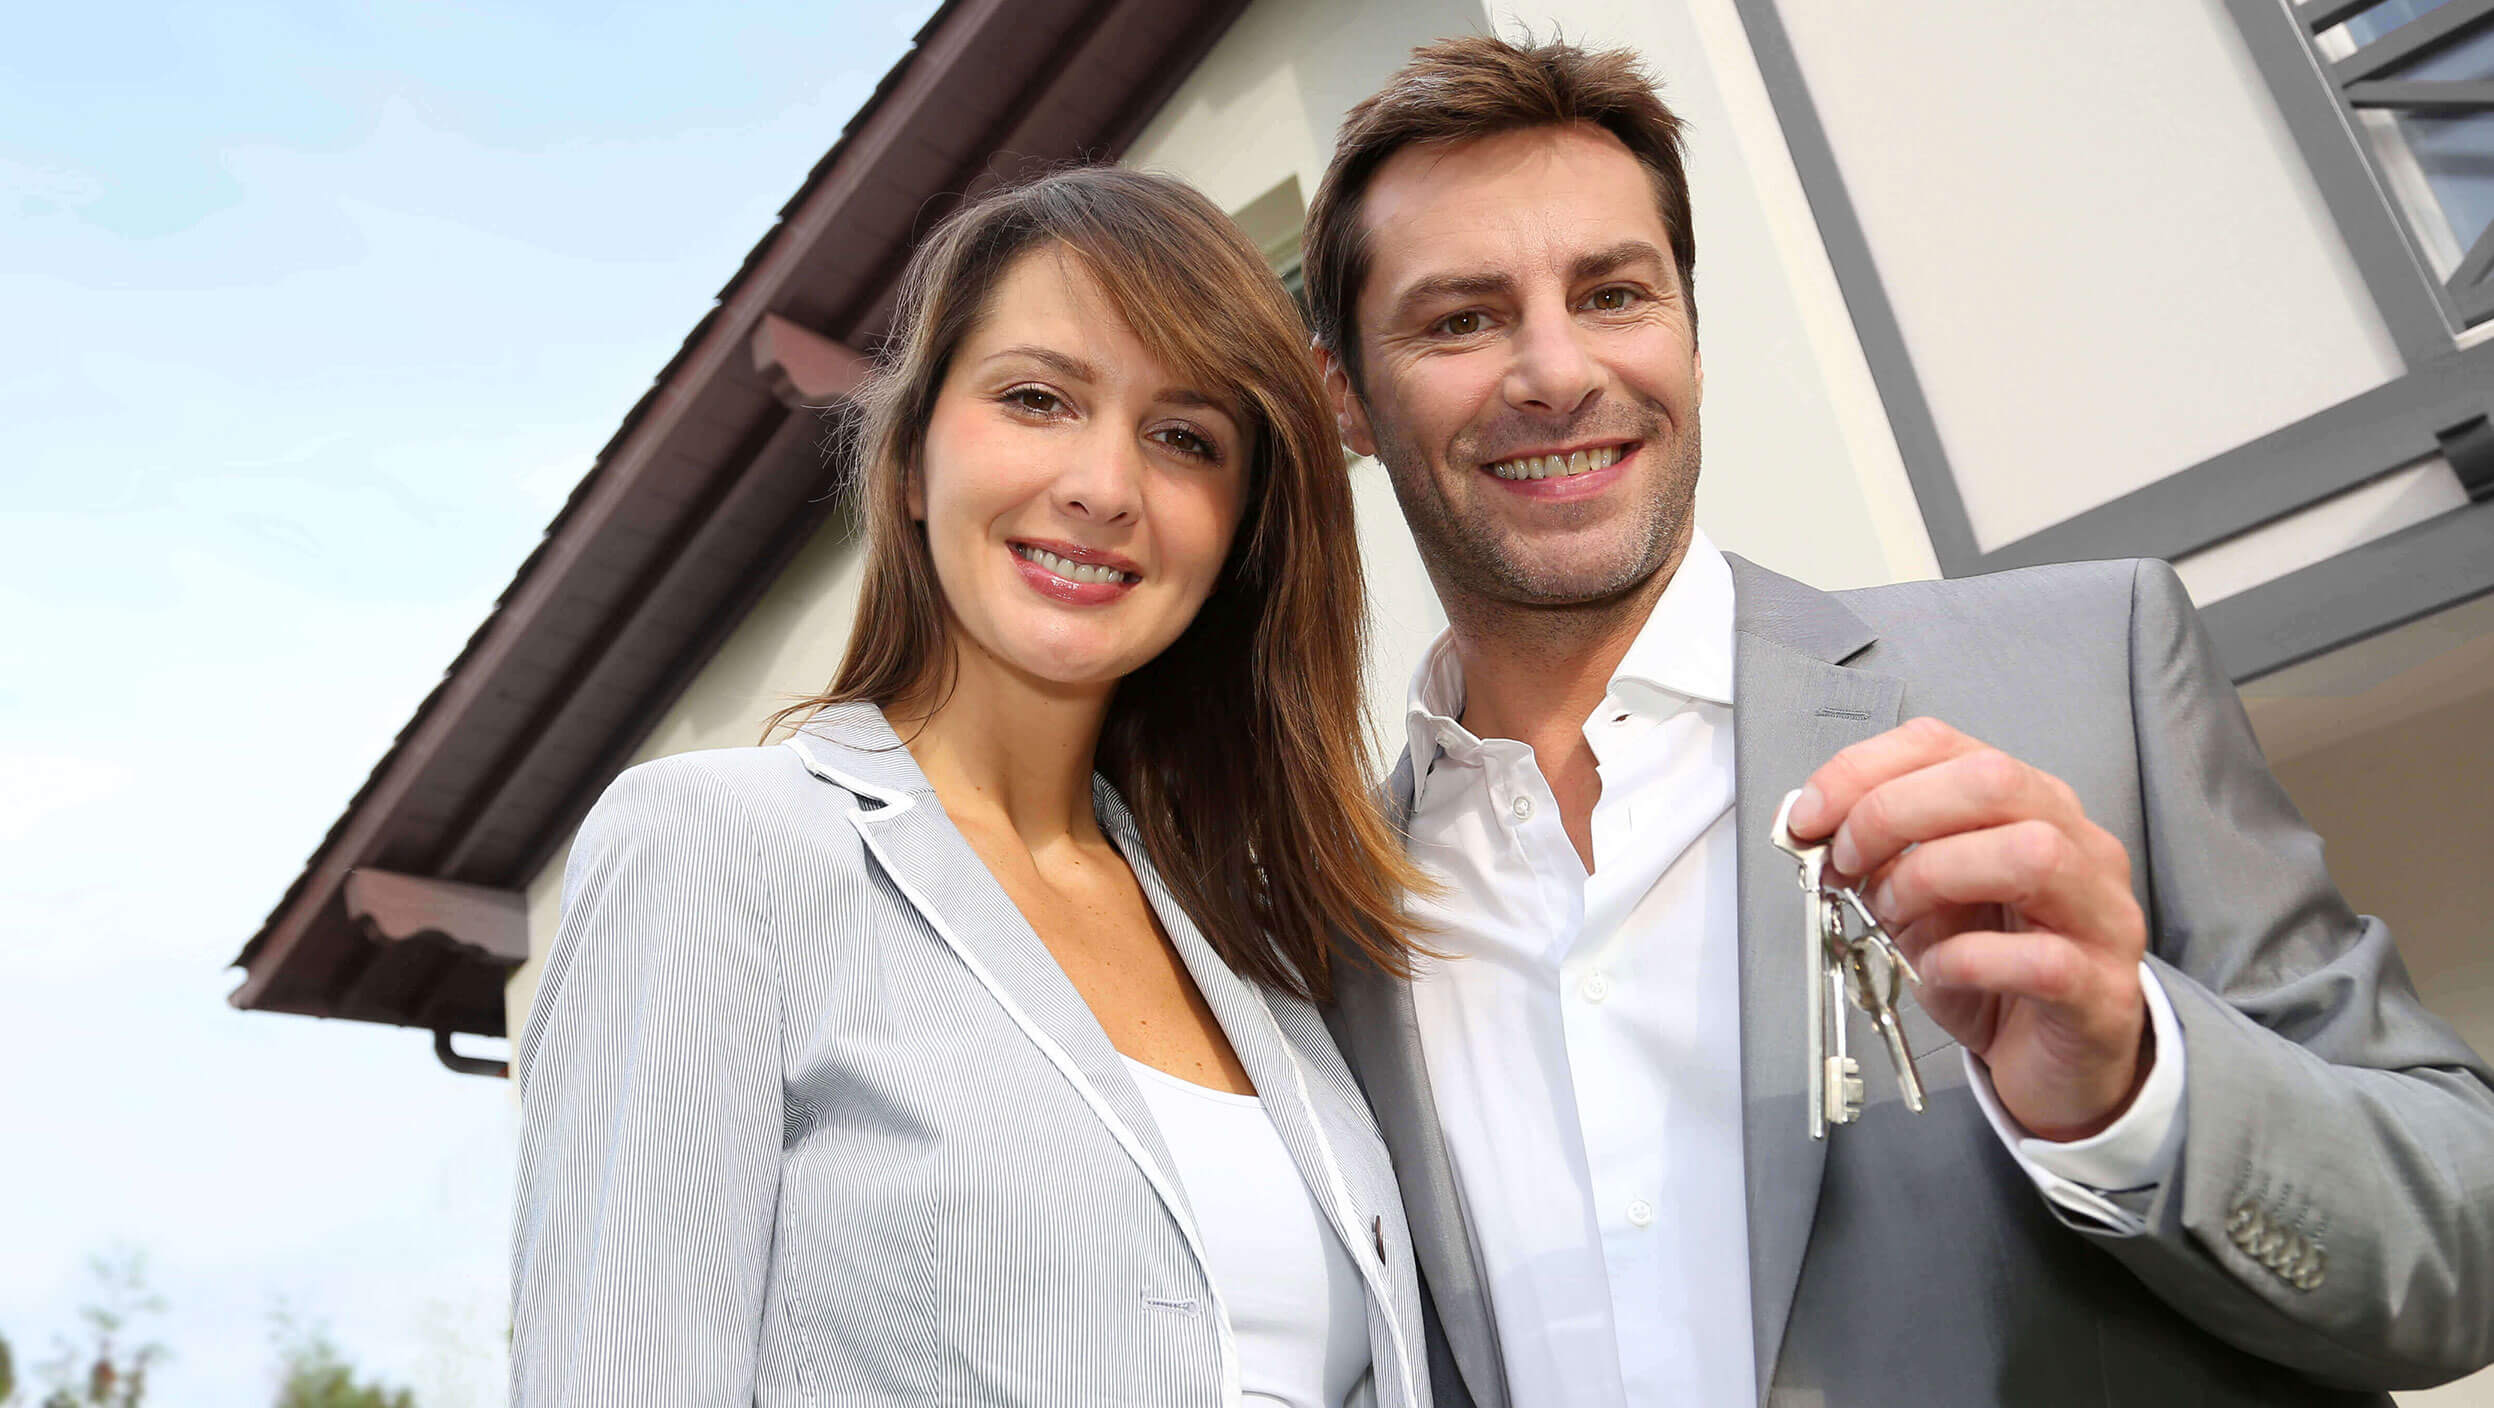 Top 3 Suburbs to Buy Property in Perth